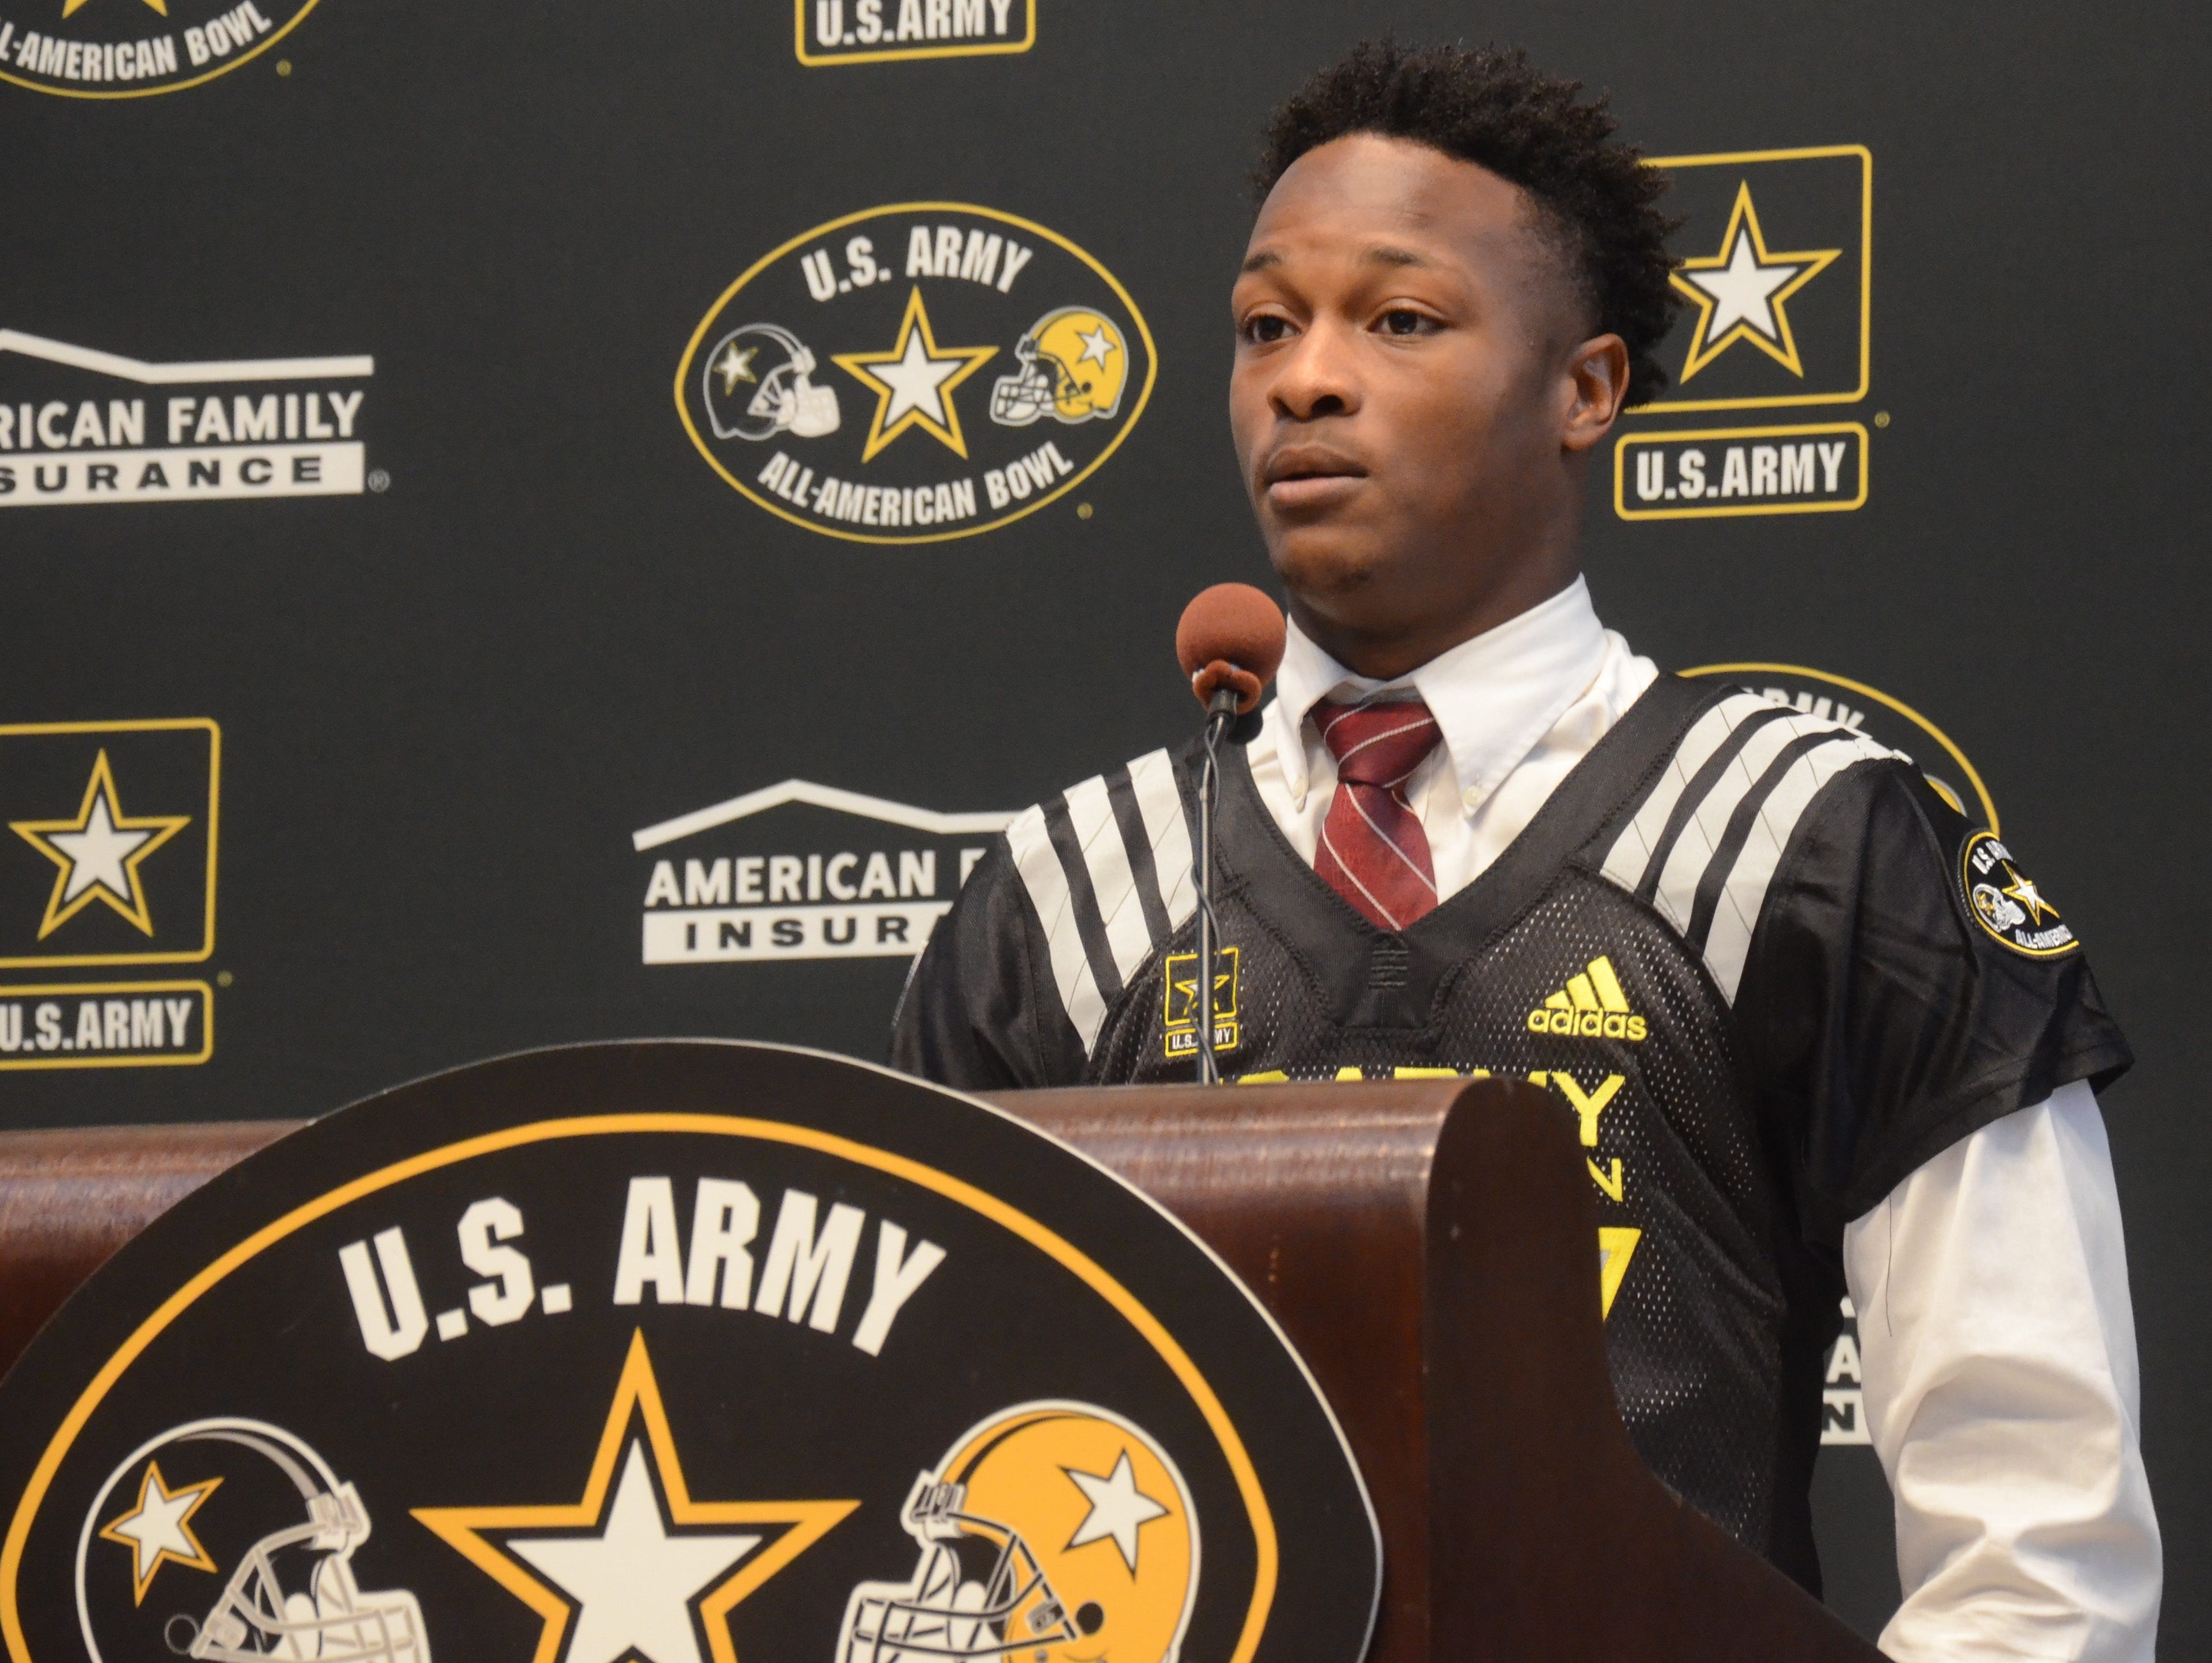 MBA running back Ty Chandler was presented an honorary U.S. Army All-American jersey on Thursday.